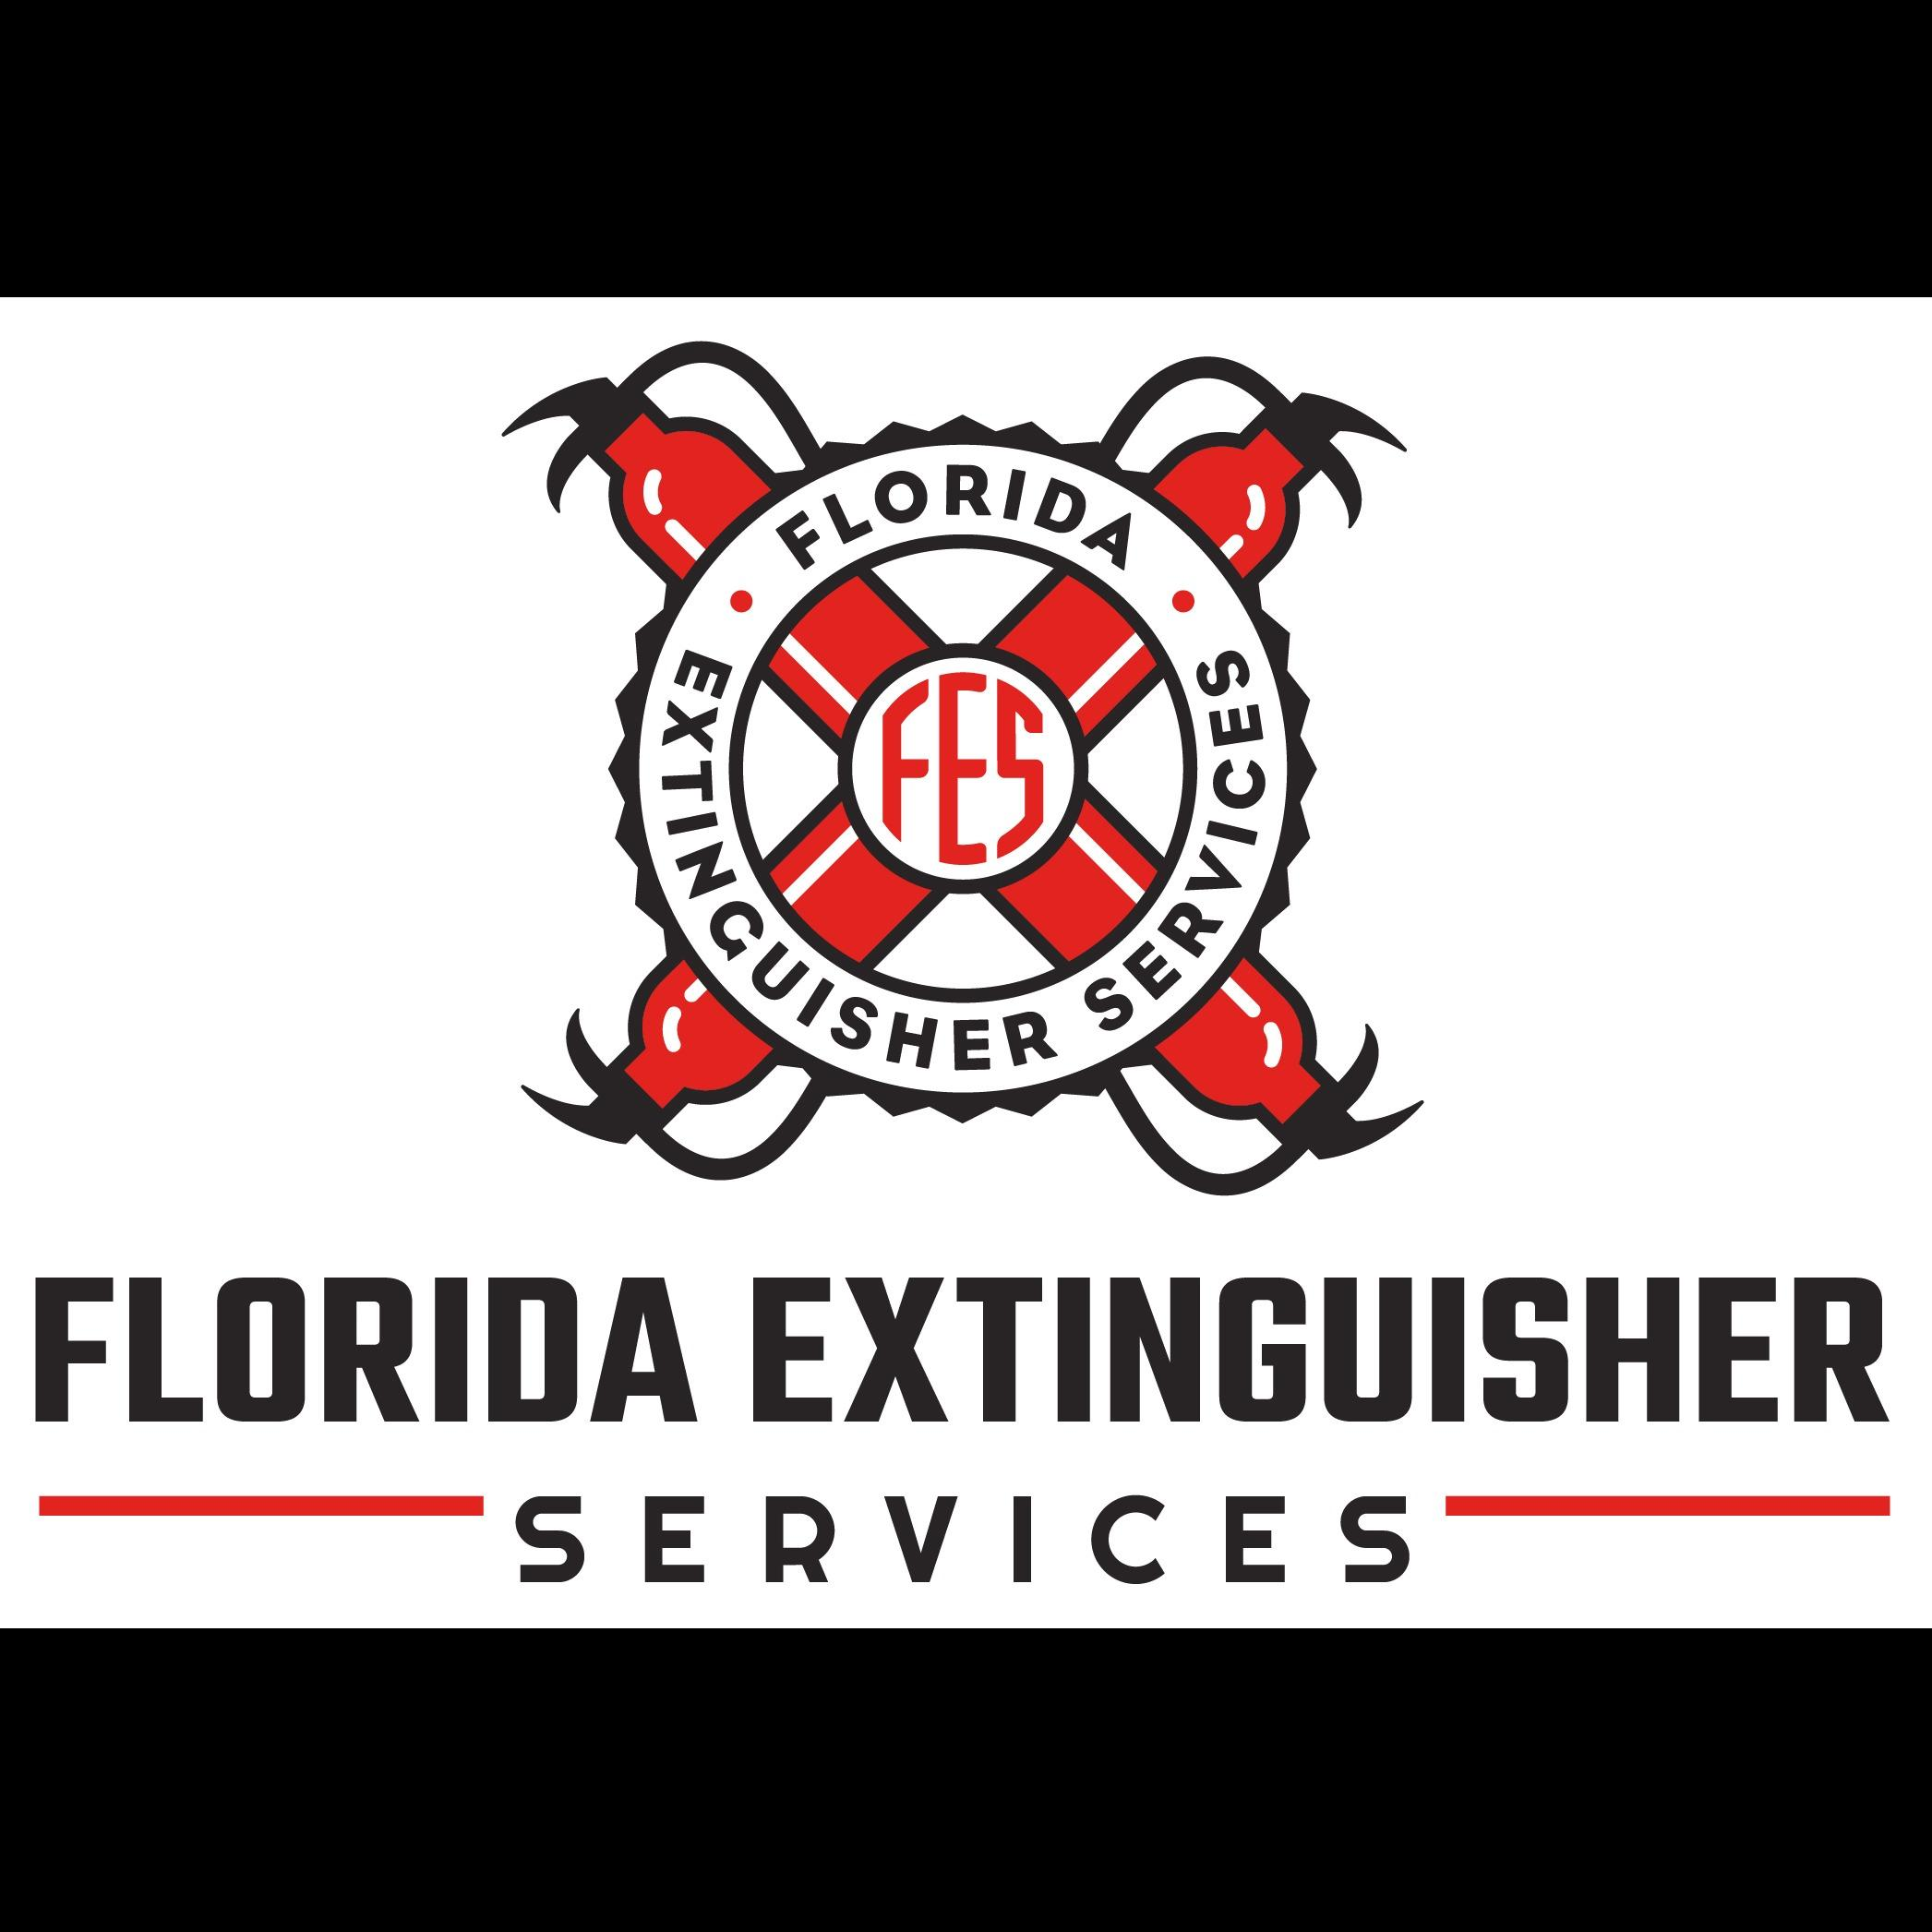 Florida Extinguisher Services